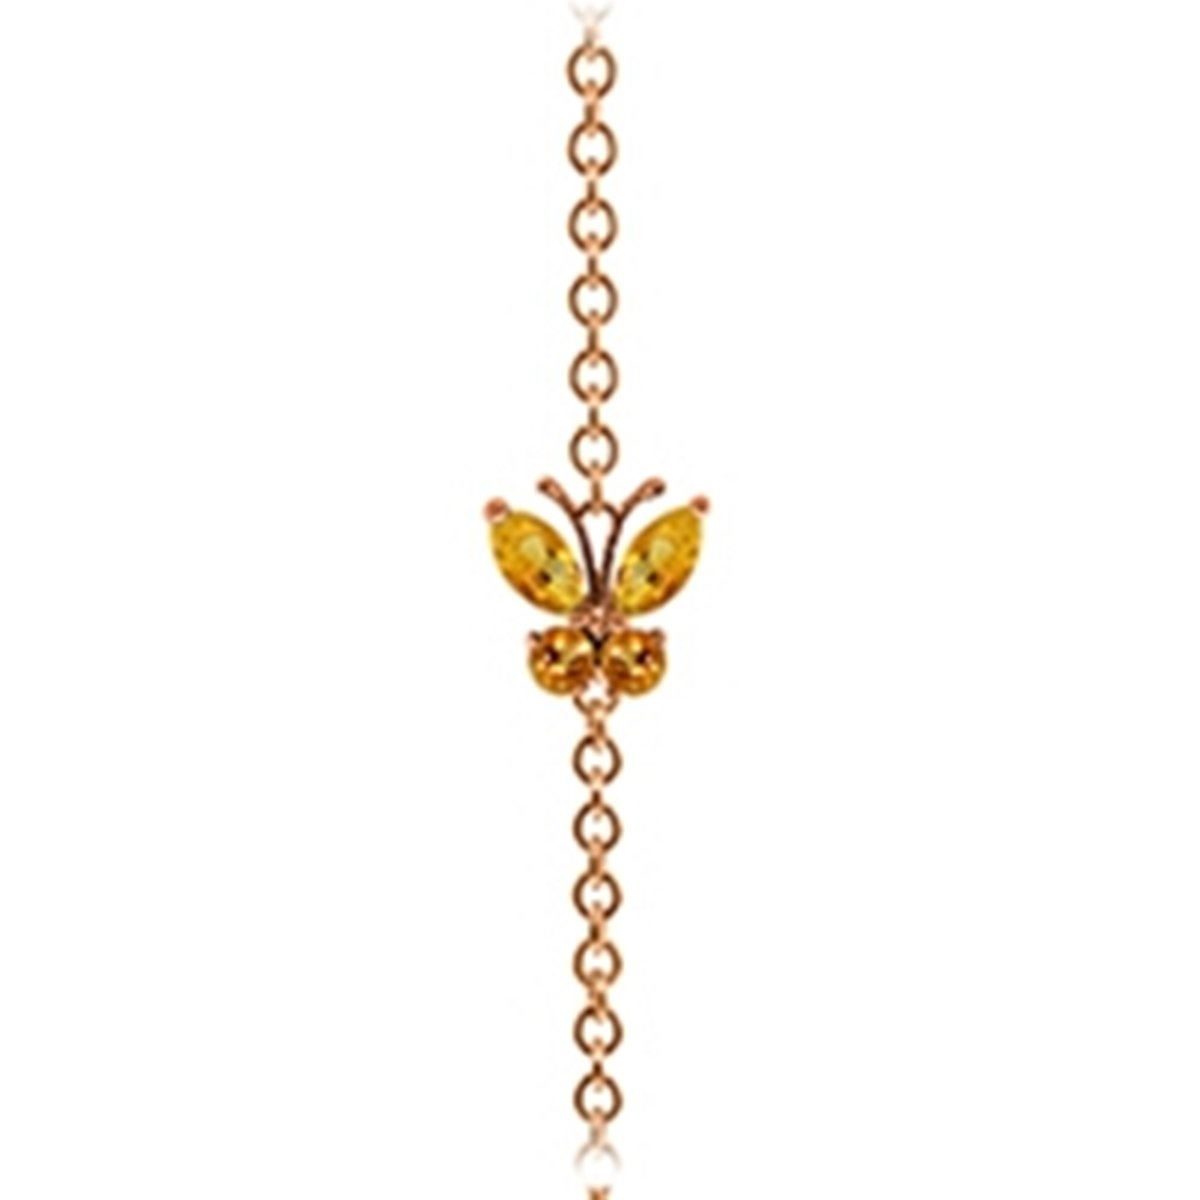 14K Solid Yellow Gold Wings of a Citrine Butterfly Bracelet 5024-Y